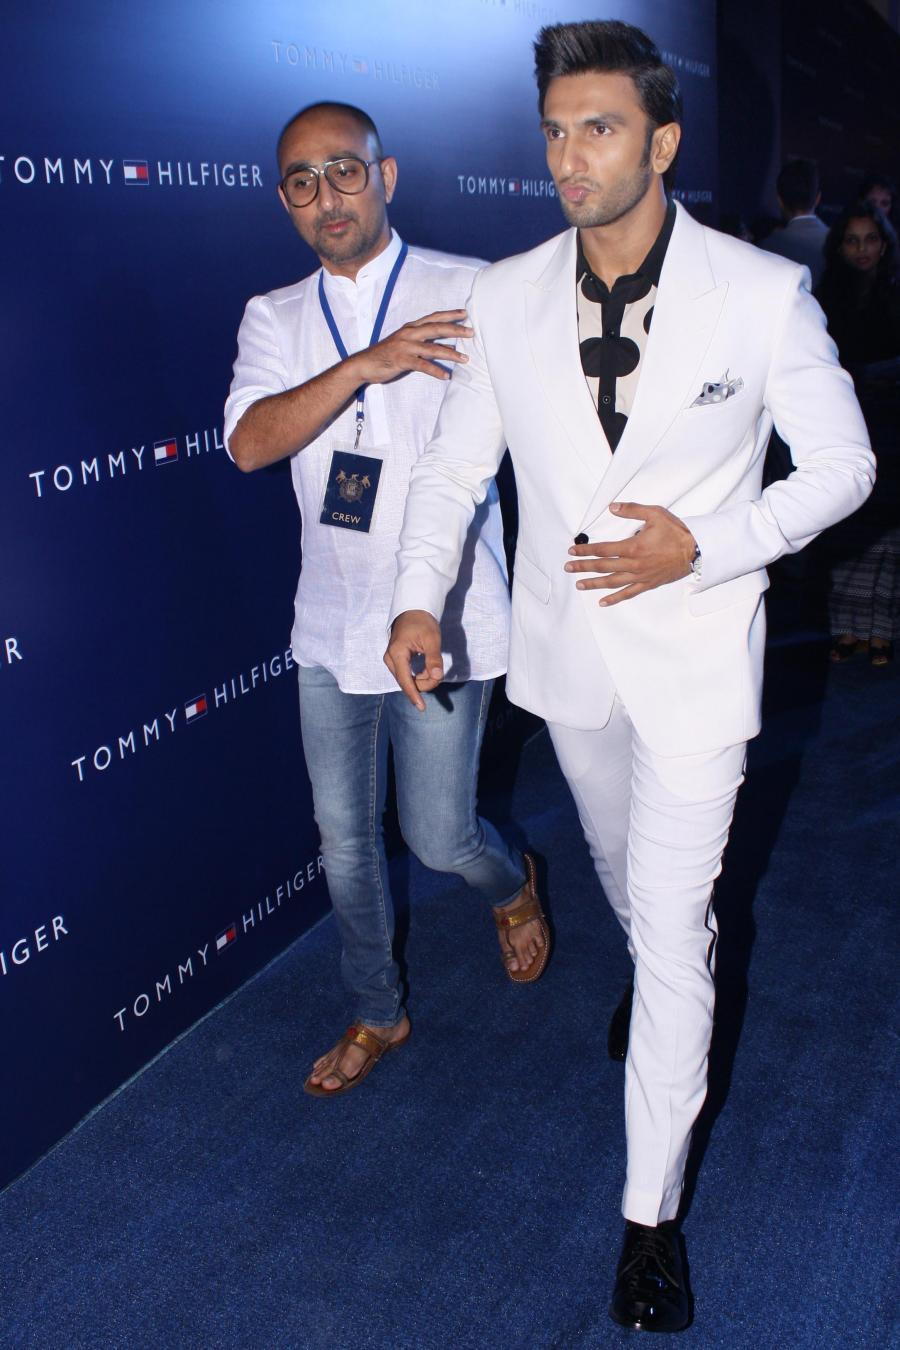 report on tommy hilfiger india